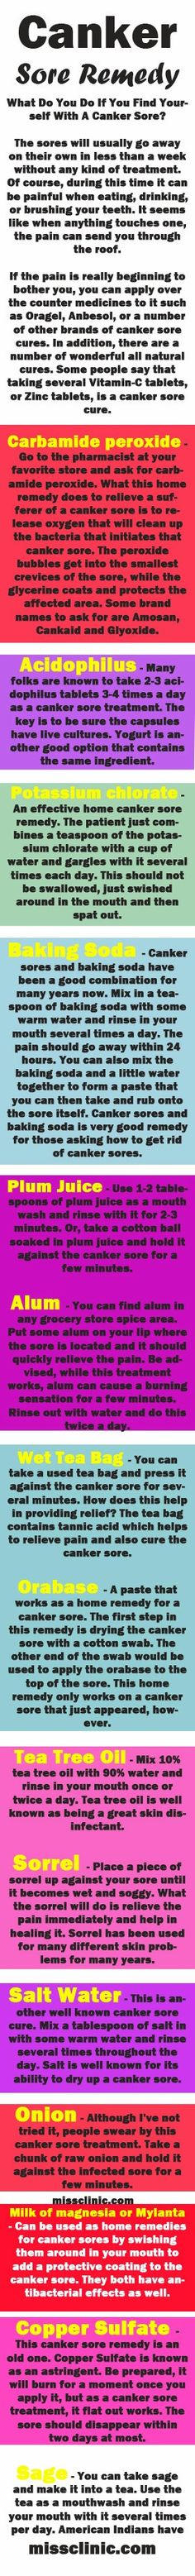 Quick #Remedies for #Canker #Sore #missclinic